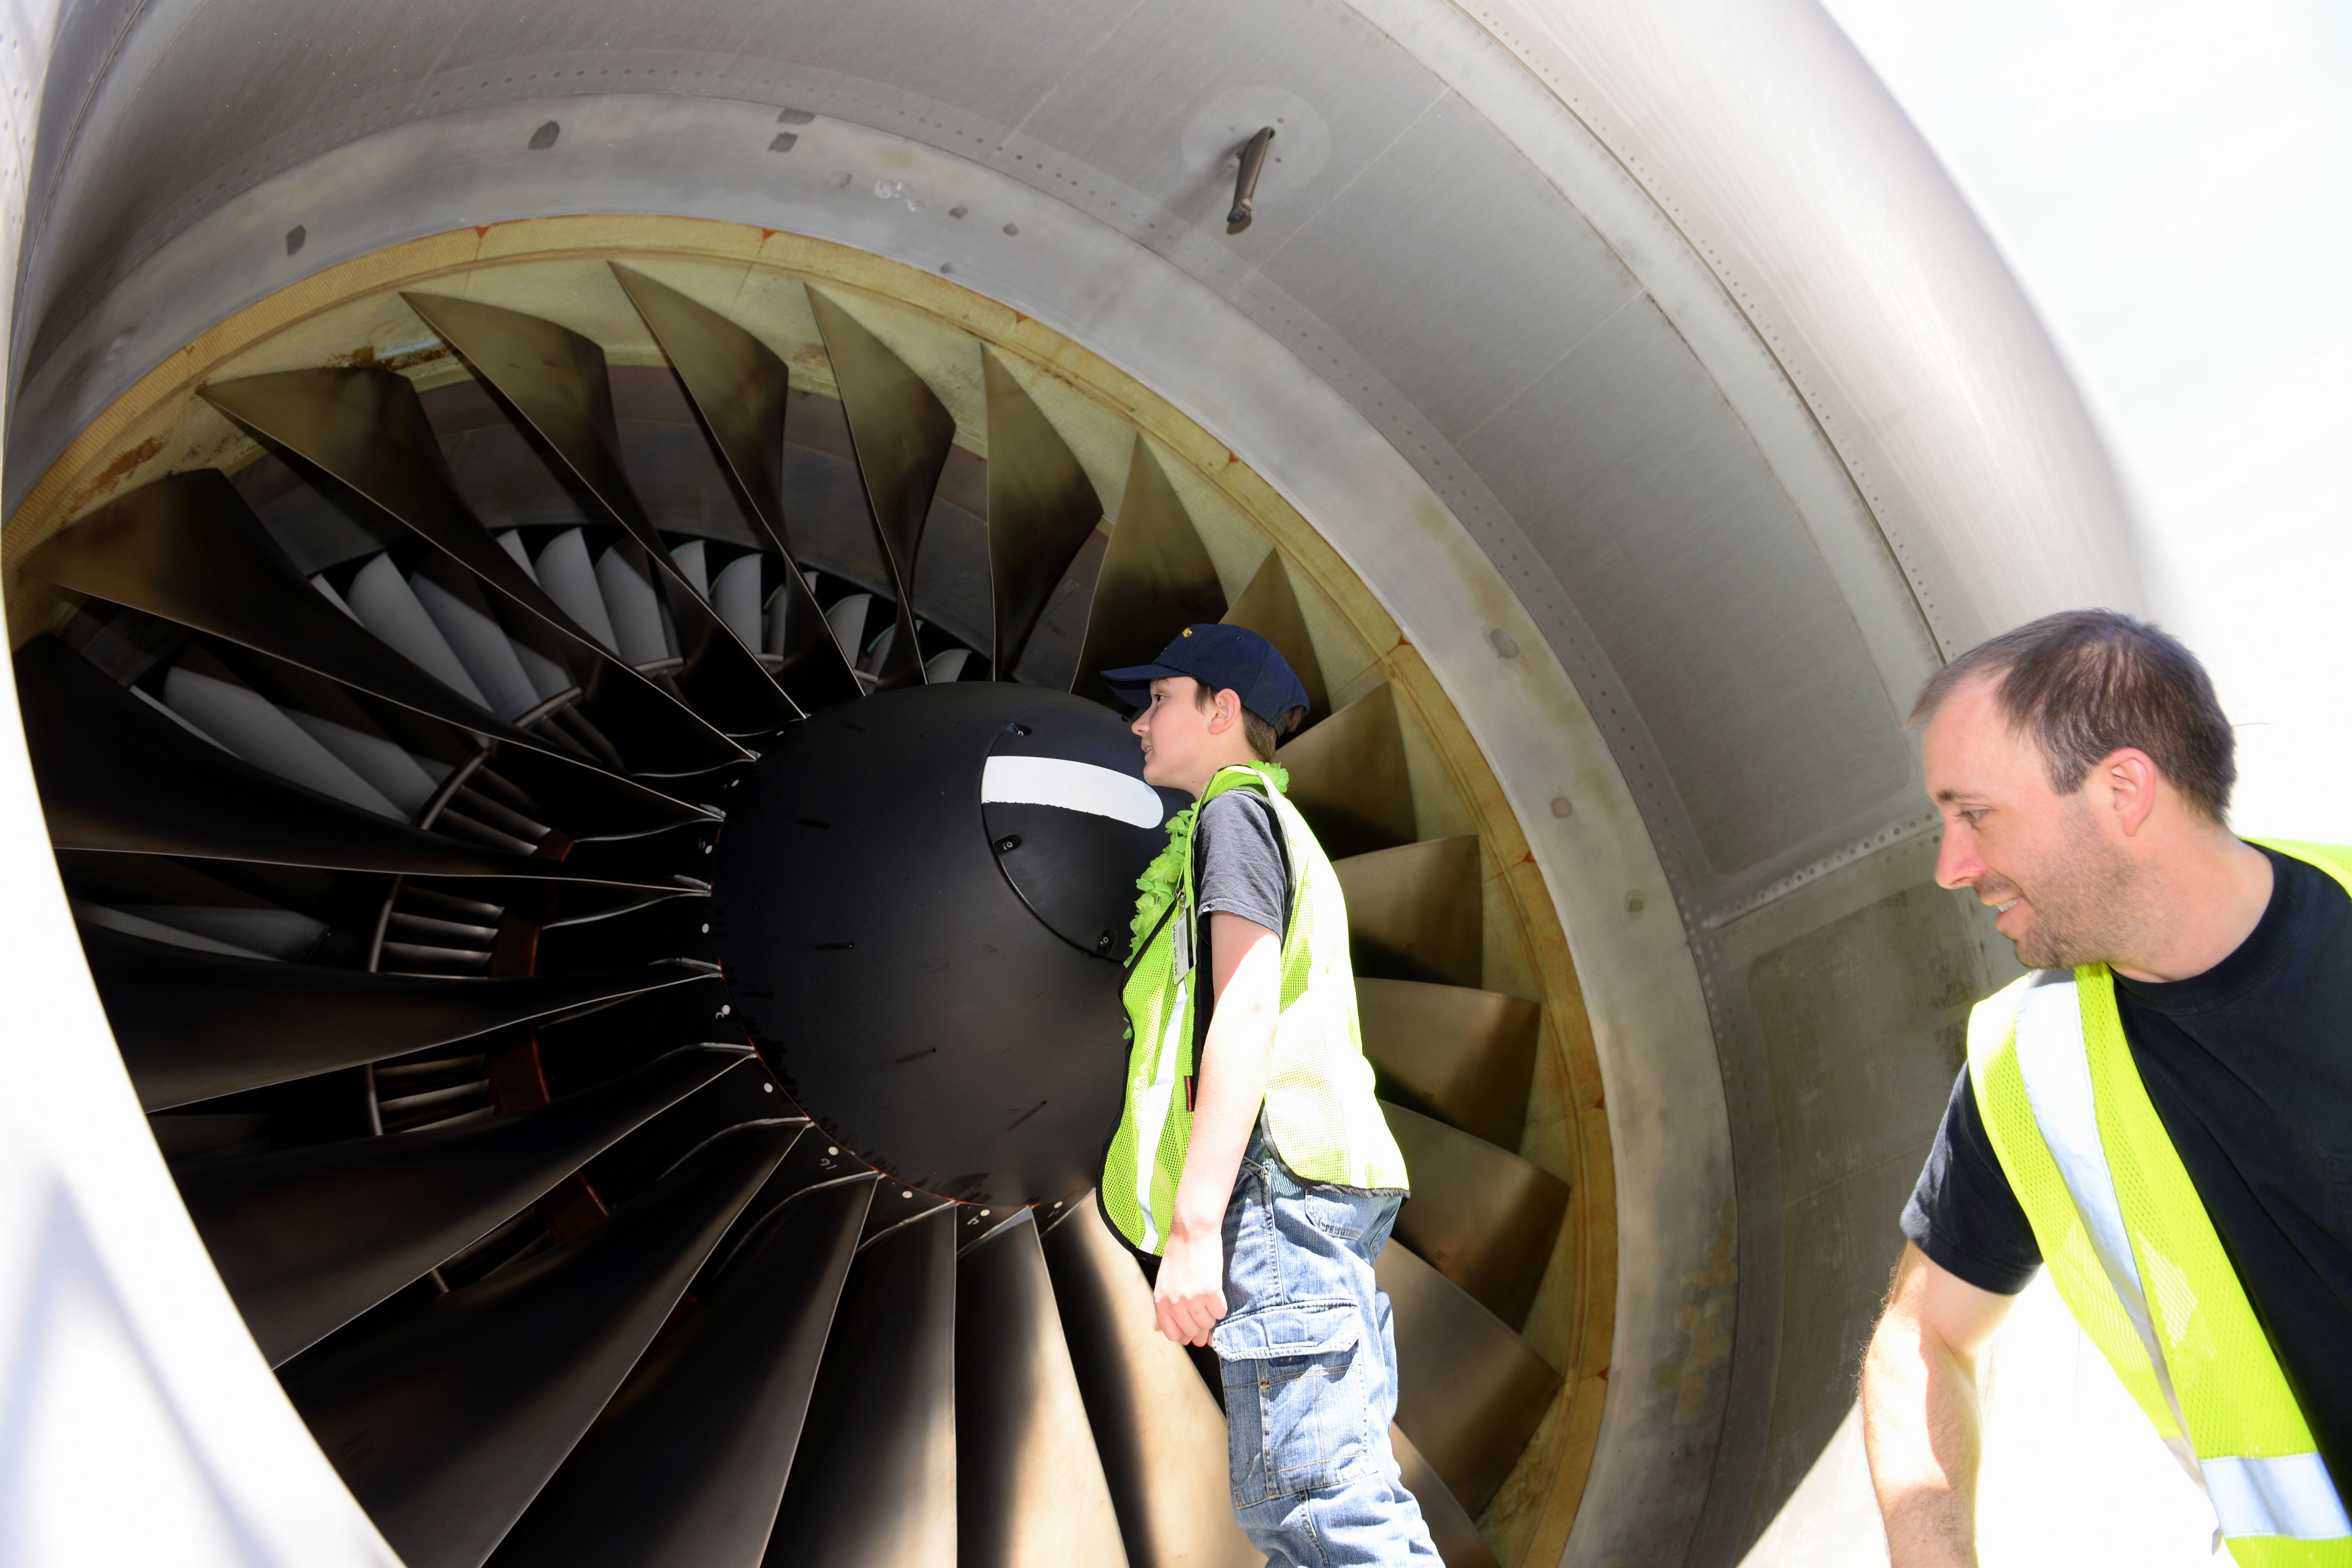 Cavan Had The Opportunity To Check Out The Aircraft Itself